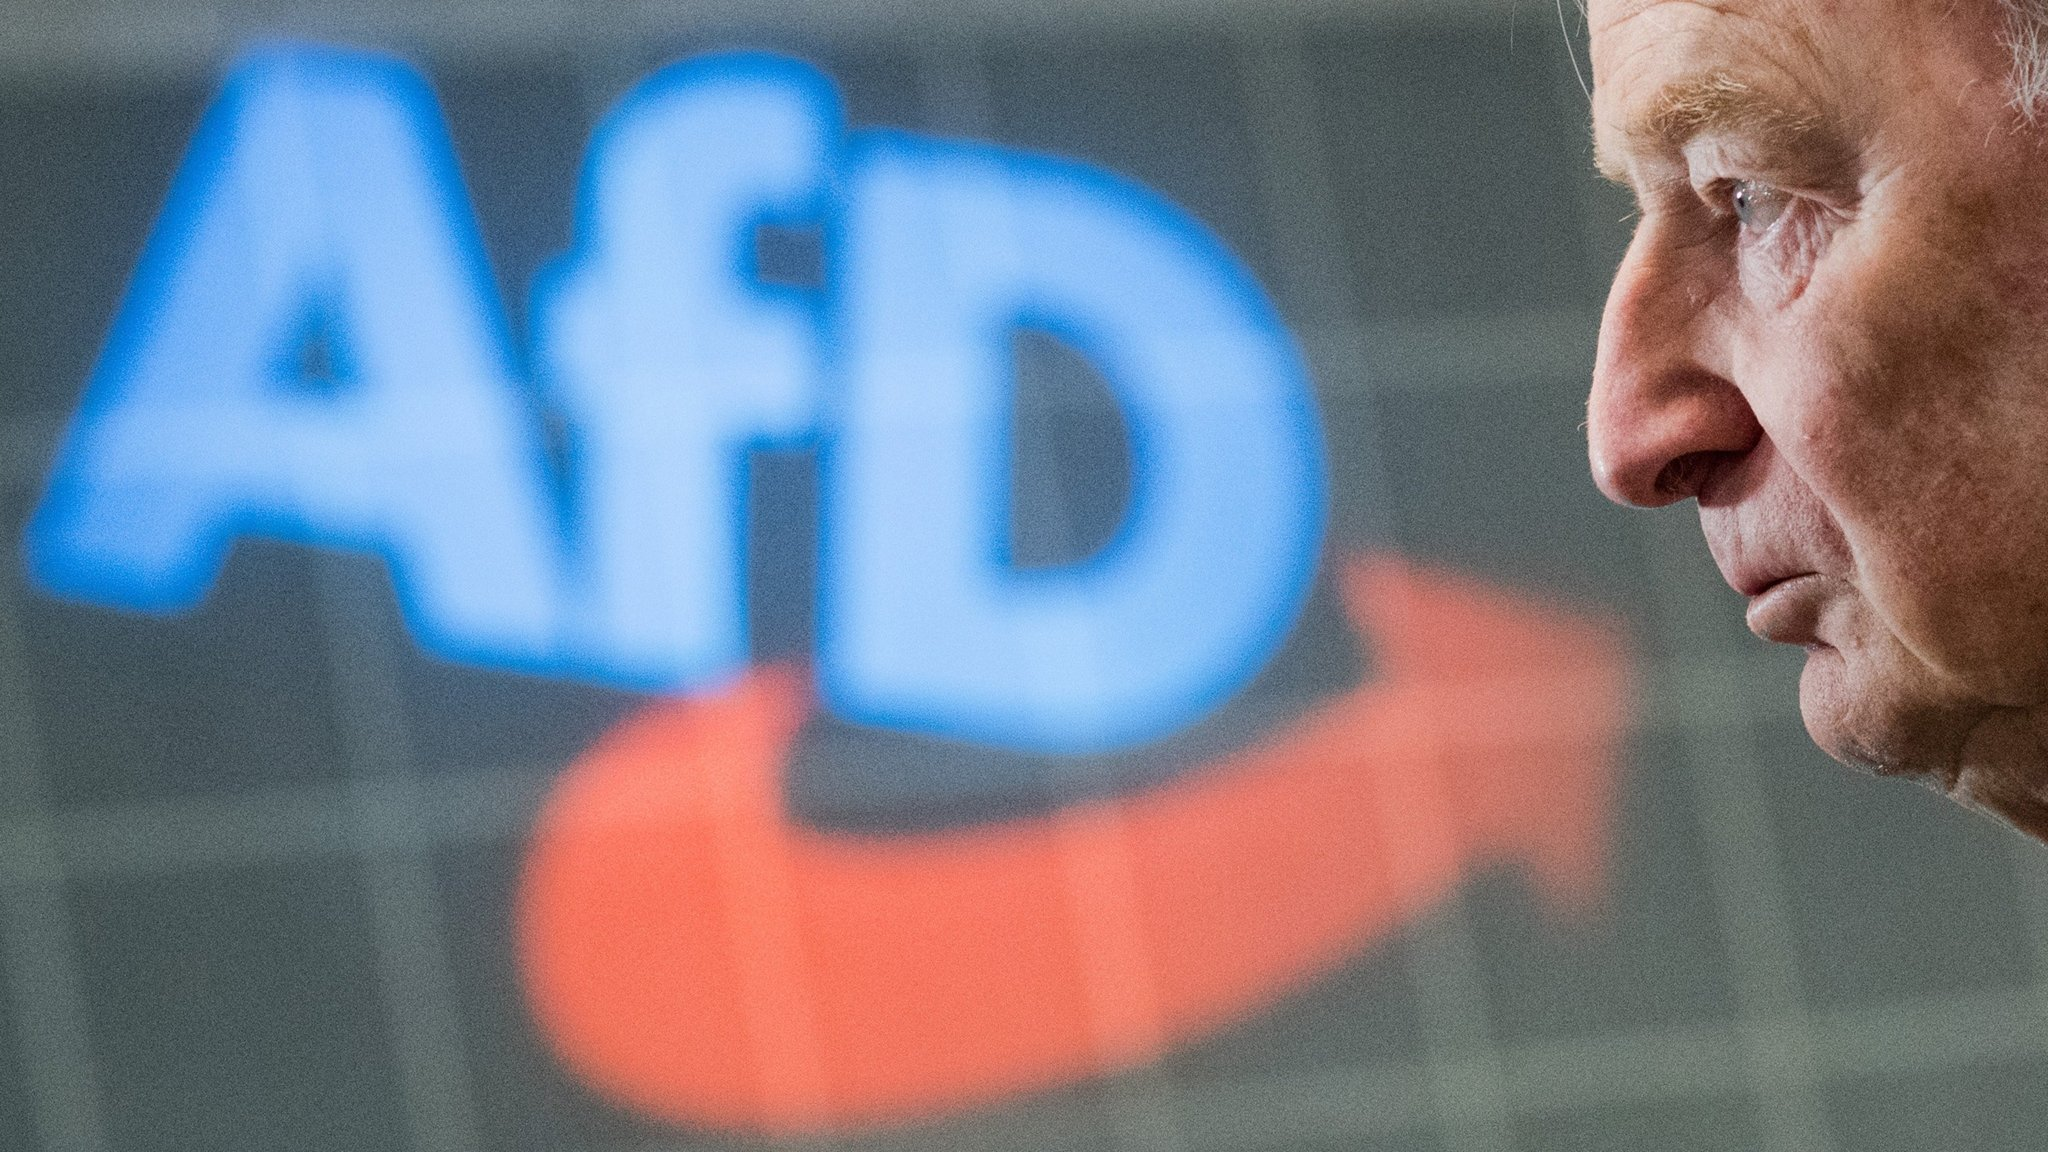 AfD moderates suffer defeat that reveals shift to party's hard-right